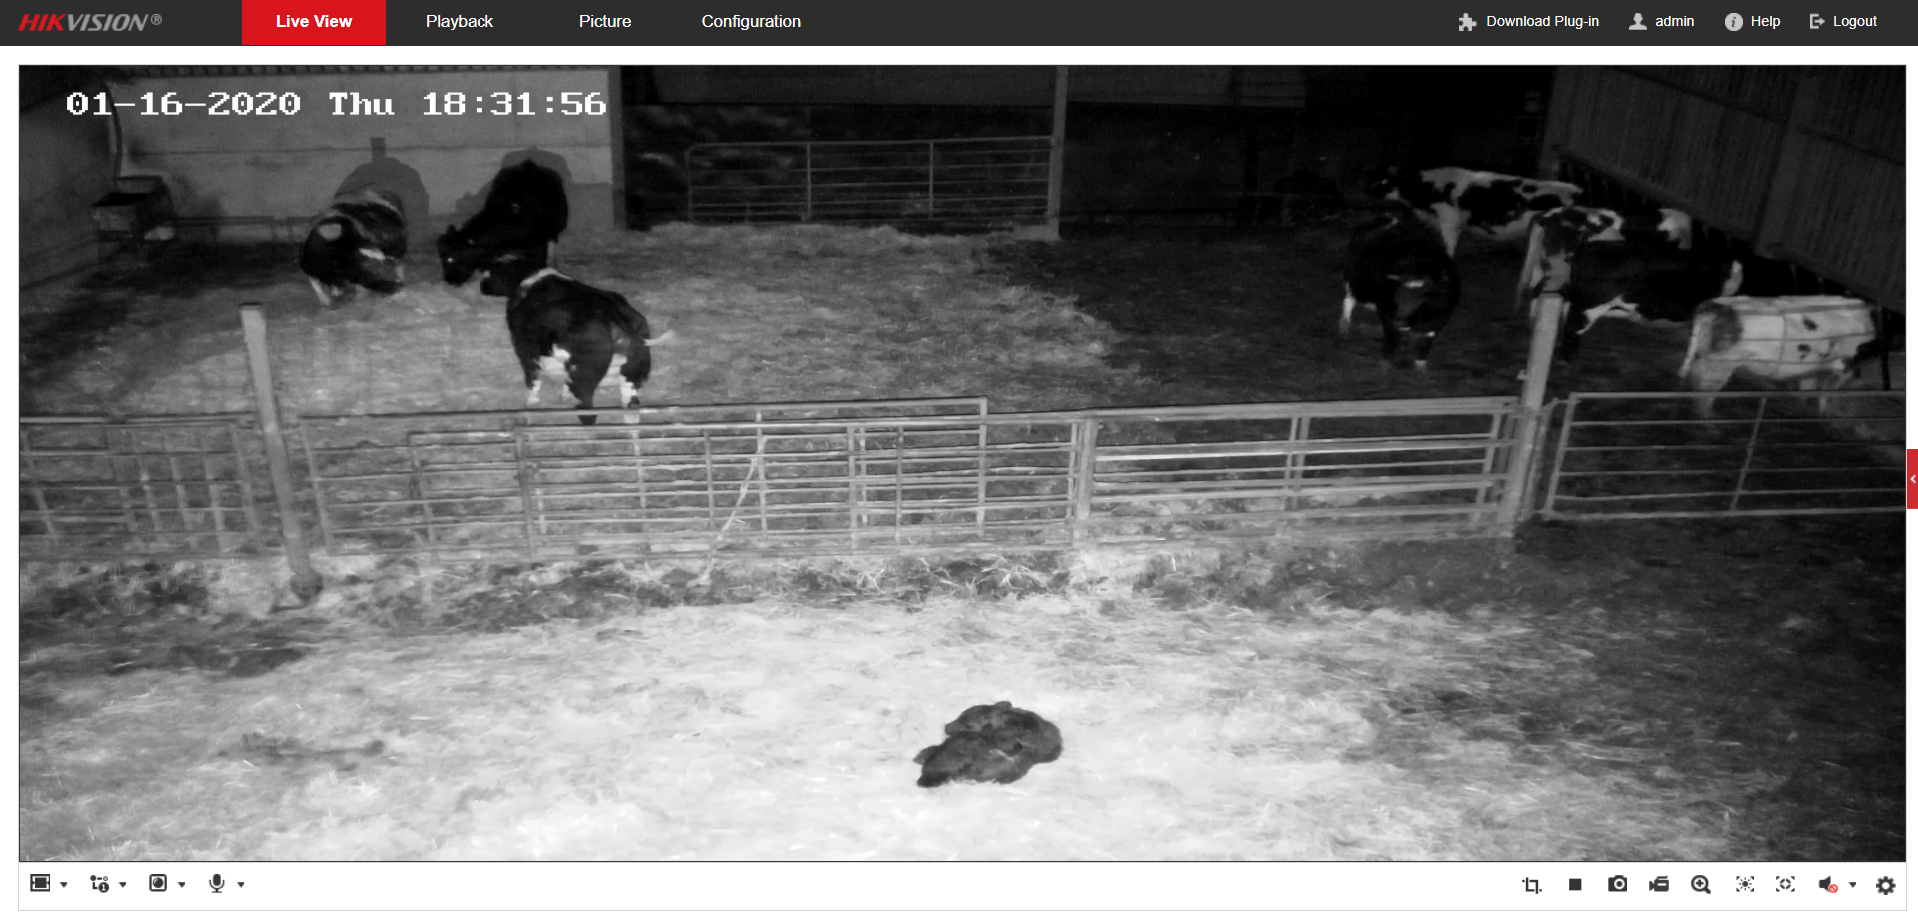 hikvision ptz night calves 2020.png